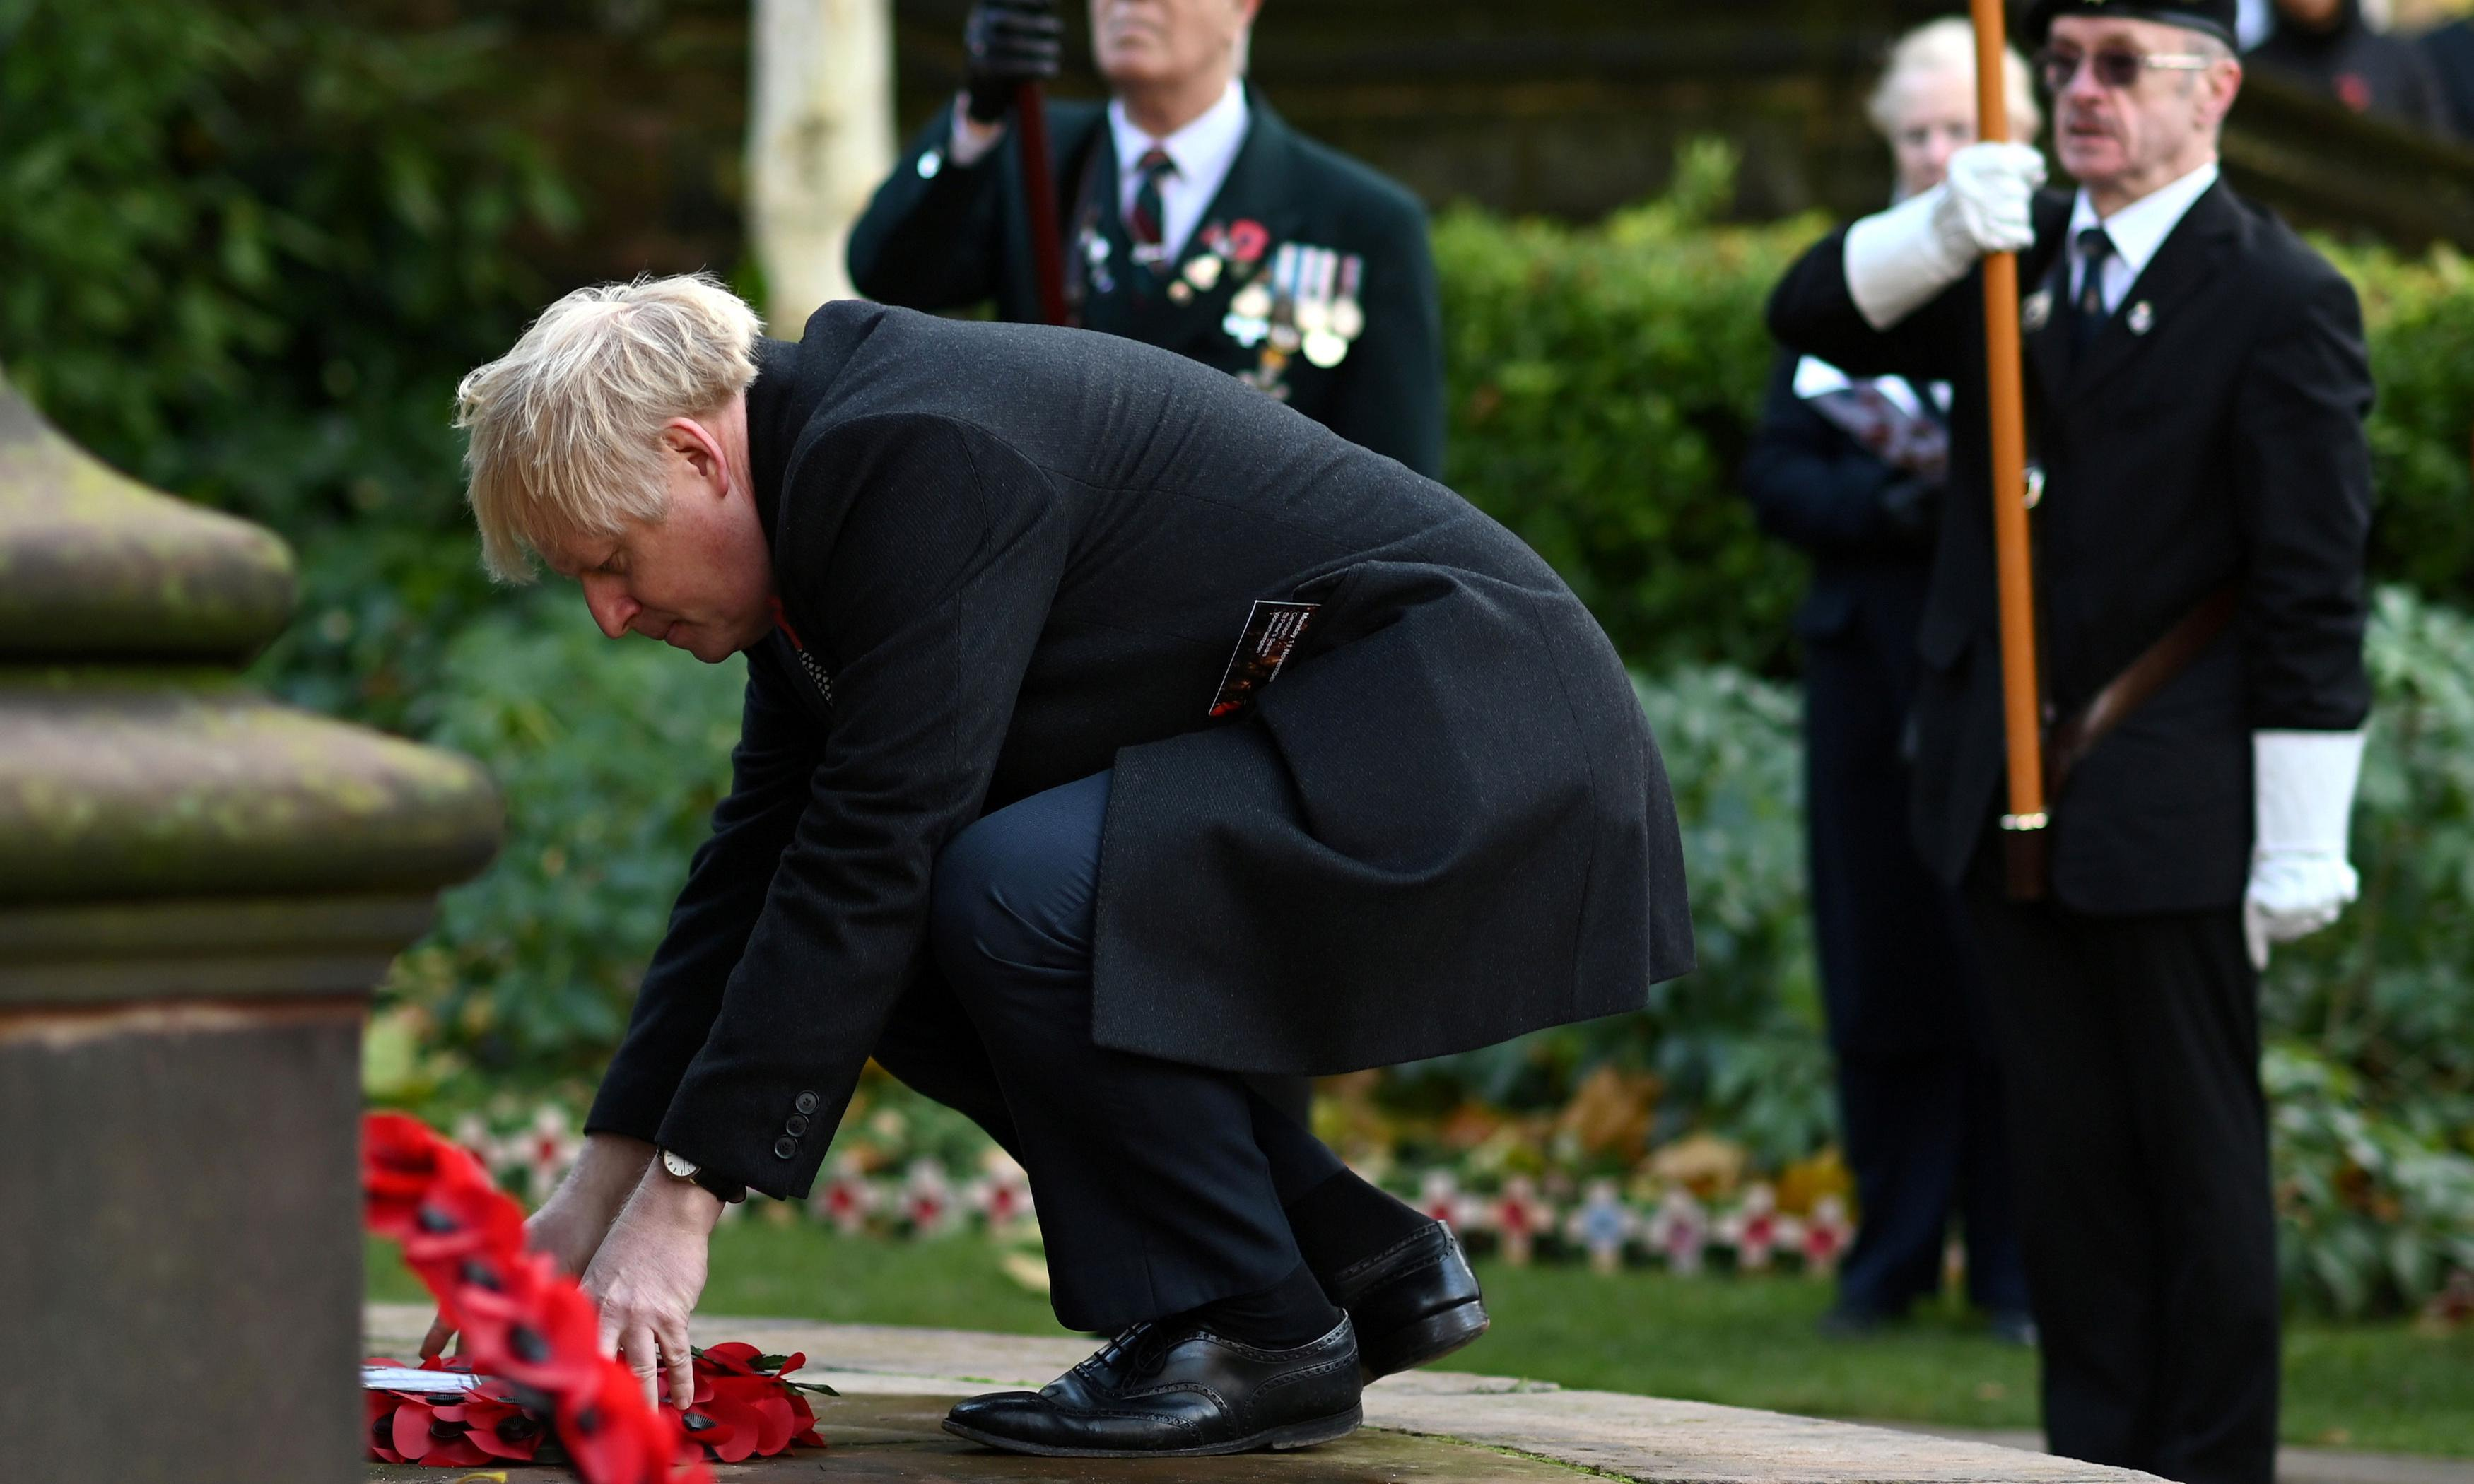 It's not a conspiracy. Boris Johnson is just bad at laying wreaths and mopping floors